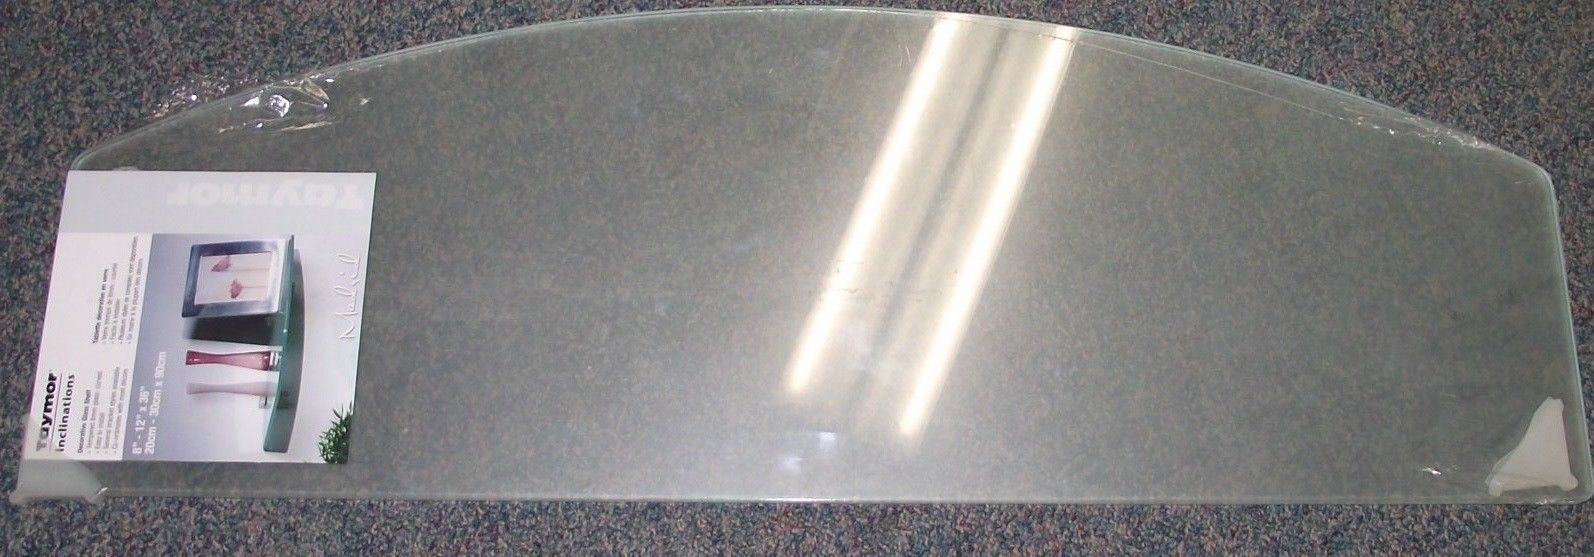 "Primary image for Taymor Decorative Glass Shelf 8"" x 12"" x 36"" 8mm Thick Tempered 52-C20908FG"